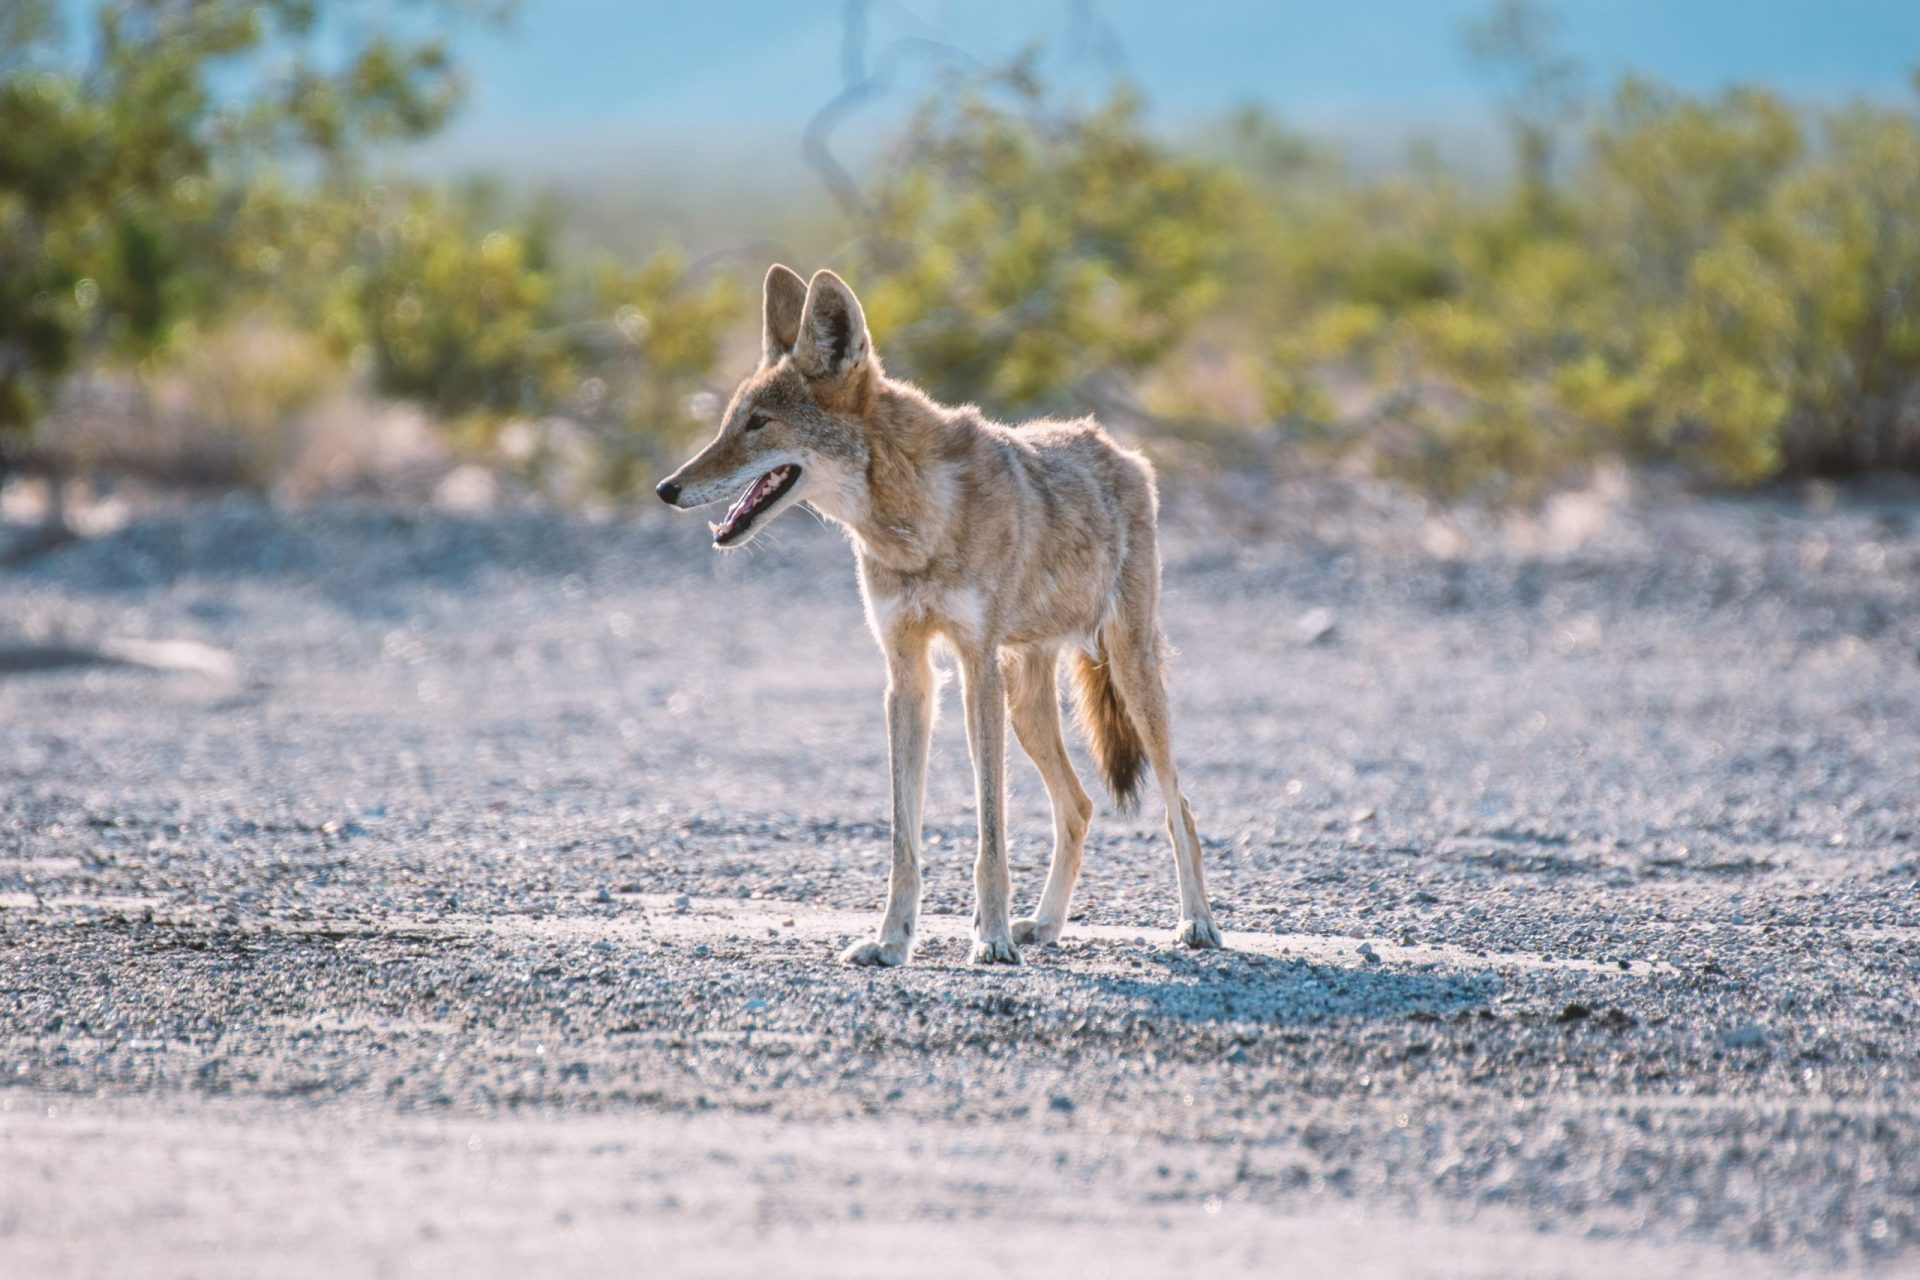 A coyote in Death Valley National Park.